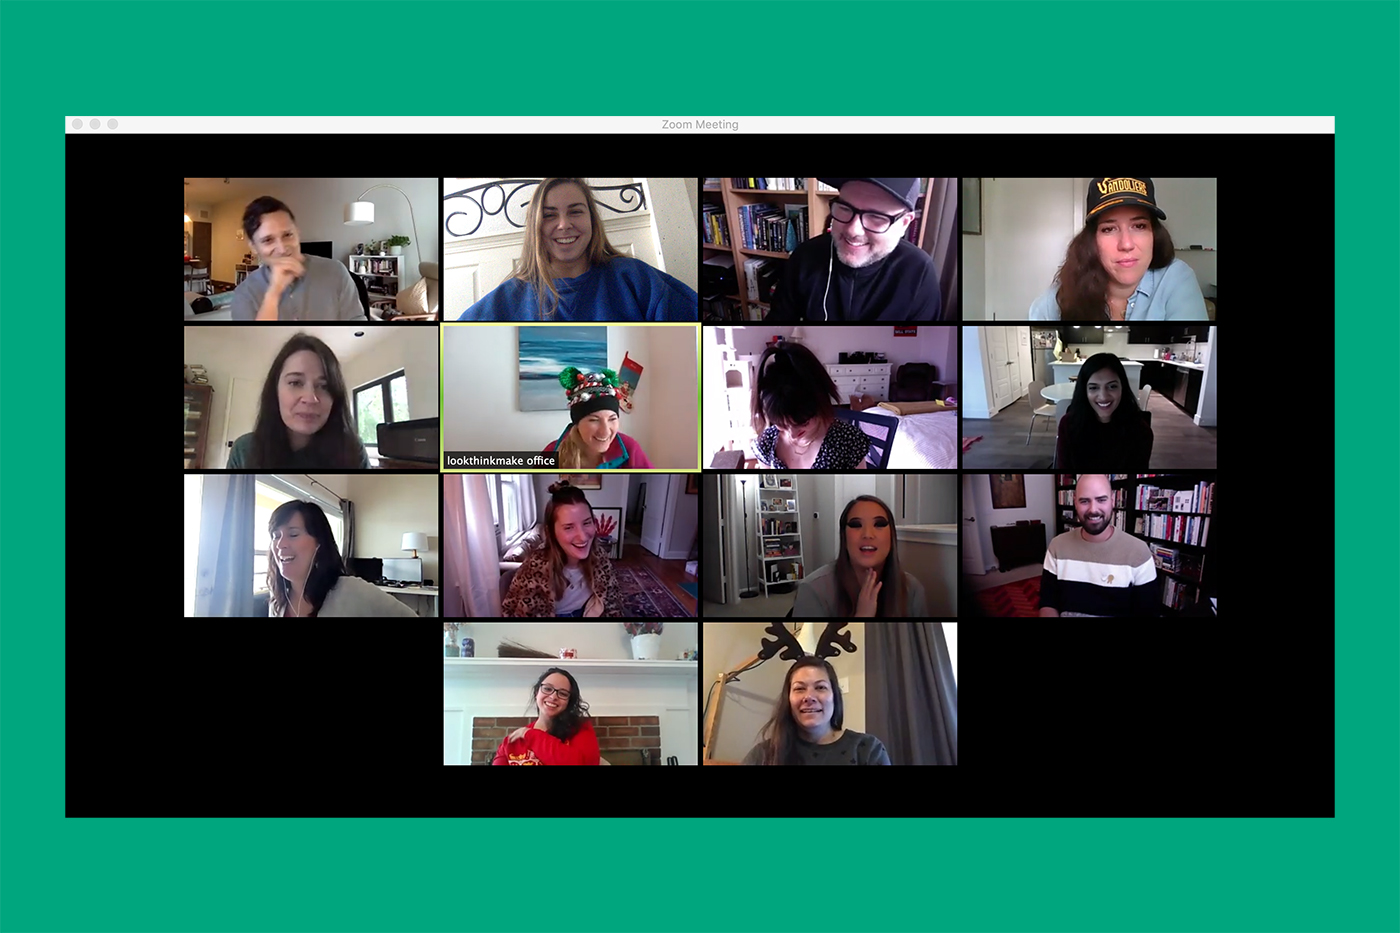 A large group of lookthinkmake employees gathered on Zoom and laughing on their screens.